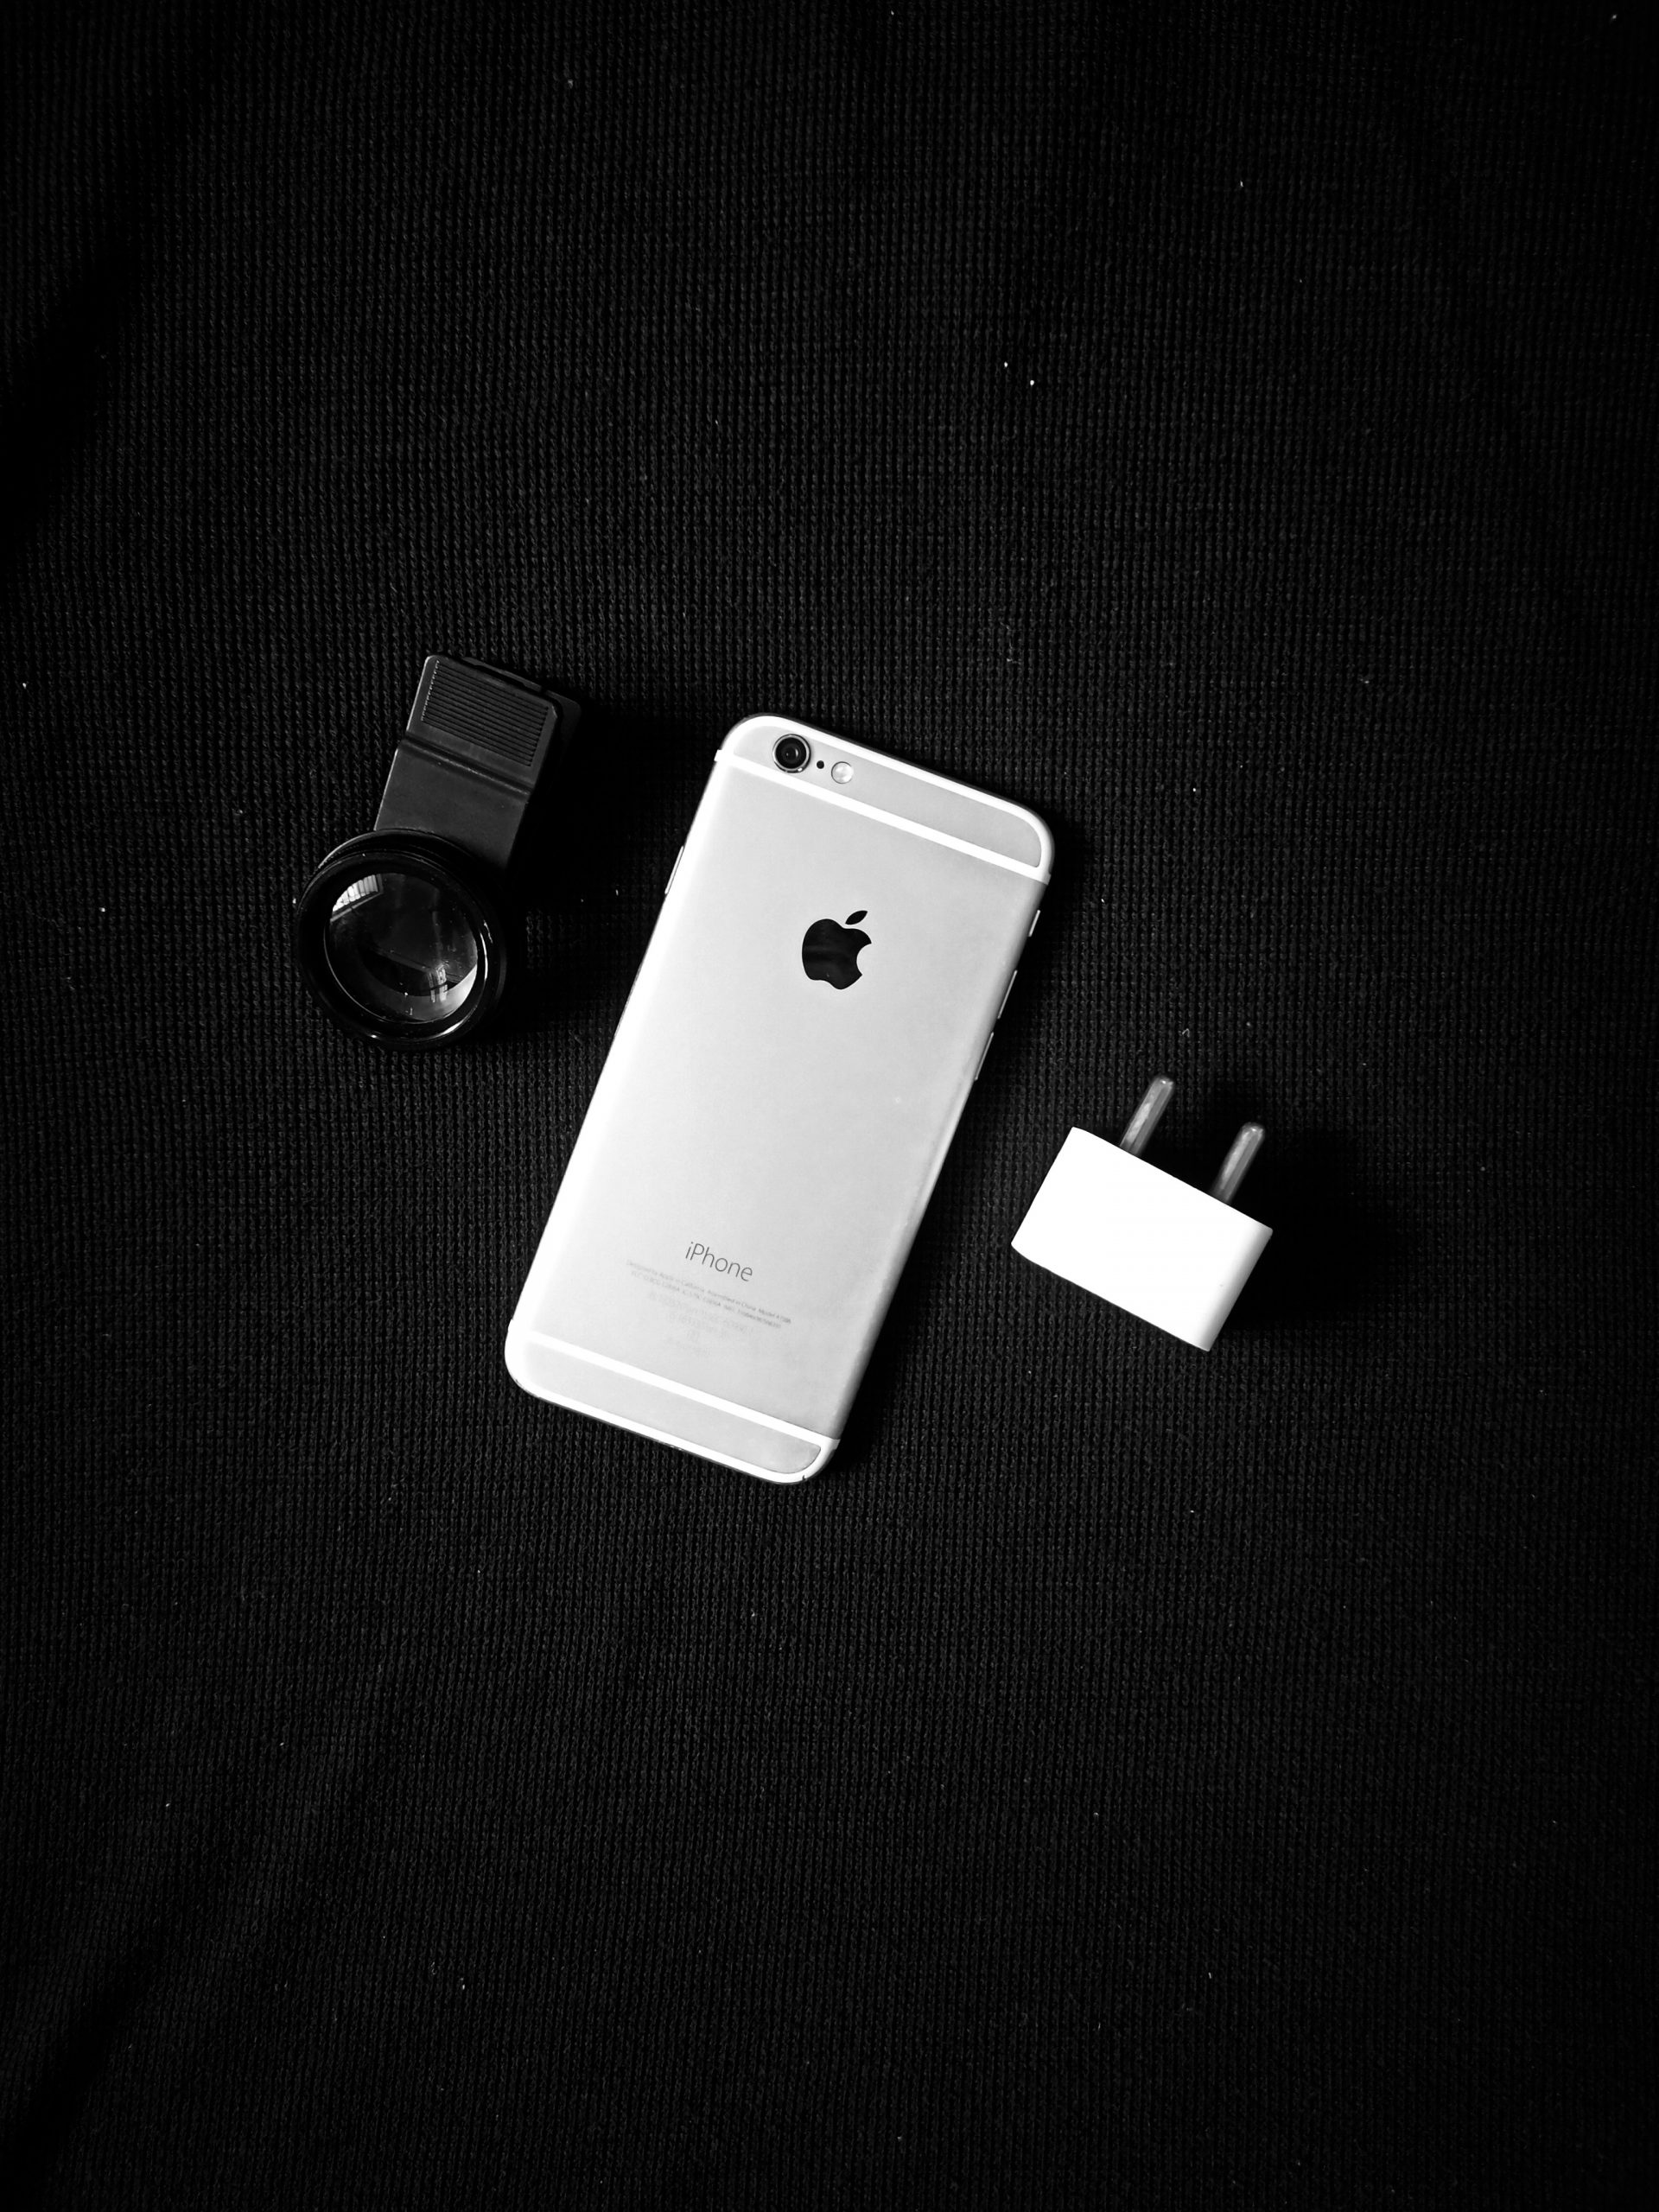 Black and white portrait of iphone